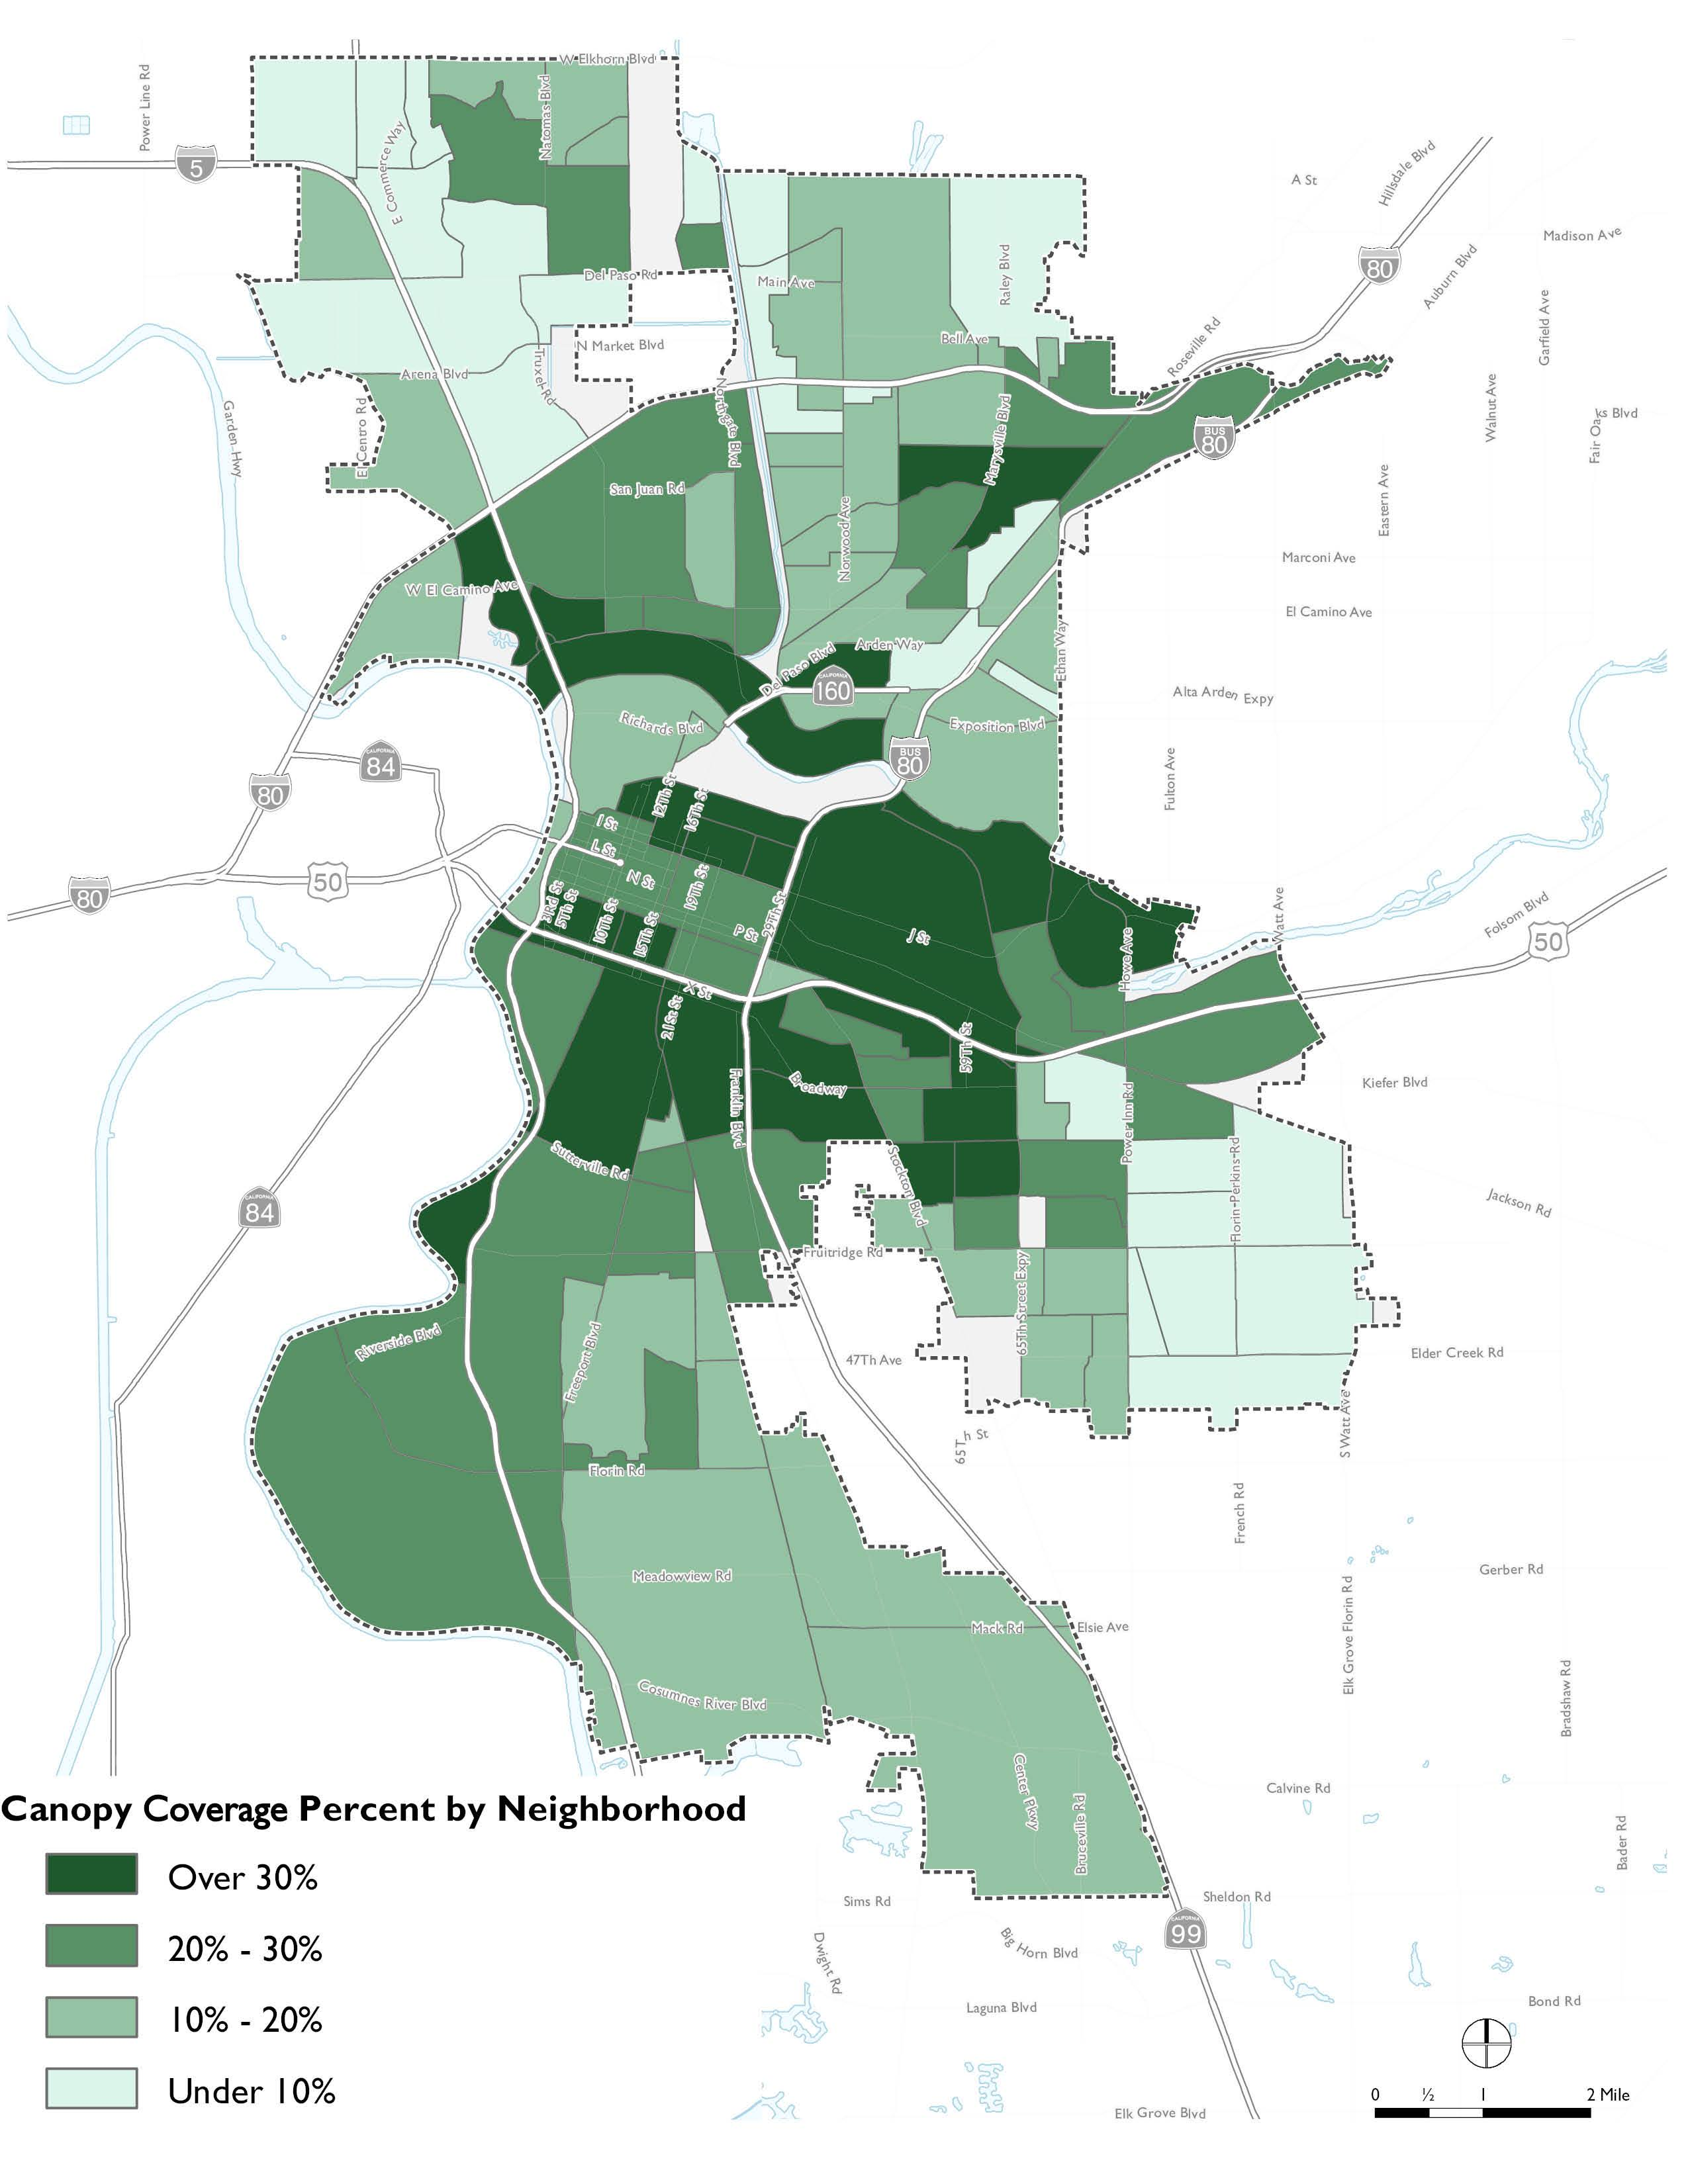 Map of Existing Tree Canopy Coverage in Sacramento